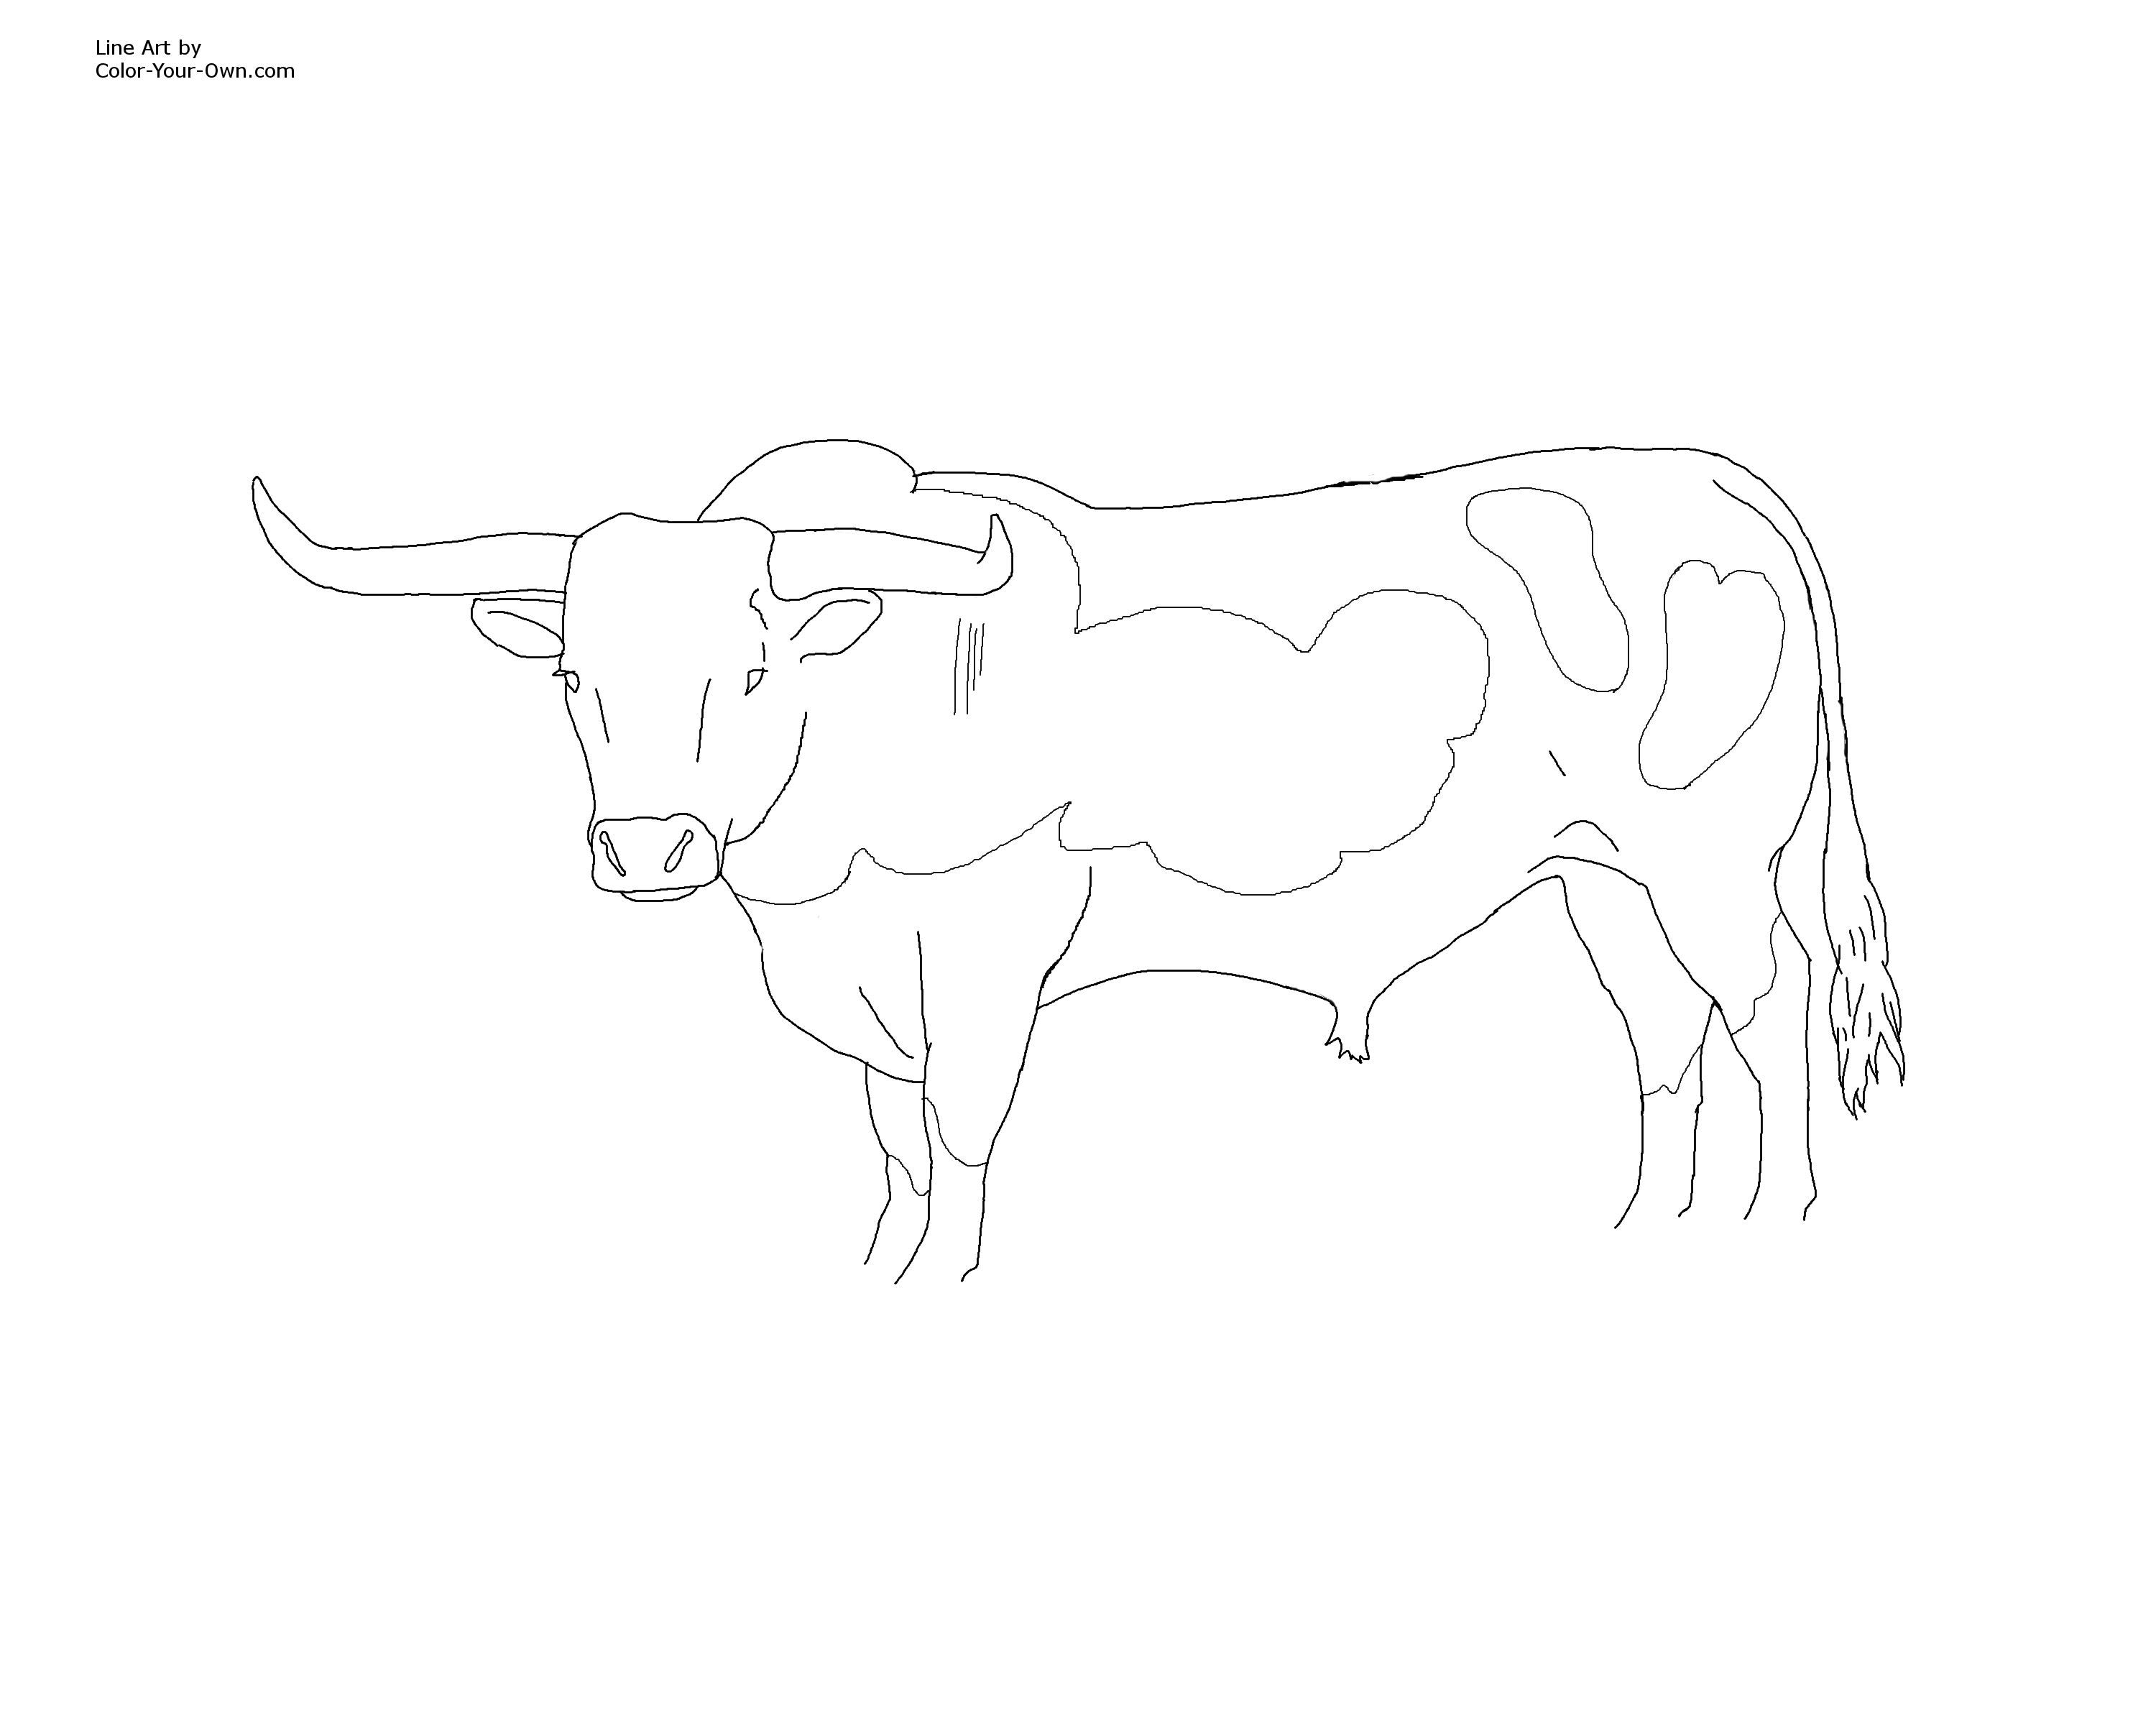 Bull Coloring Pages To Print Coloring Pages Coloring Pages To